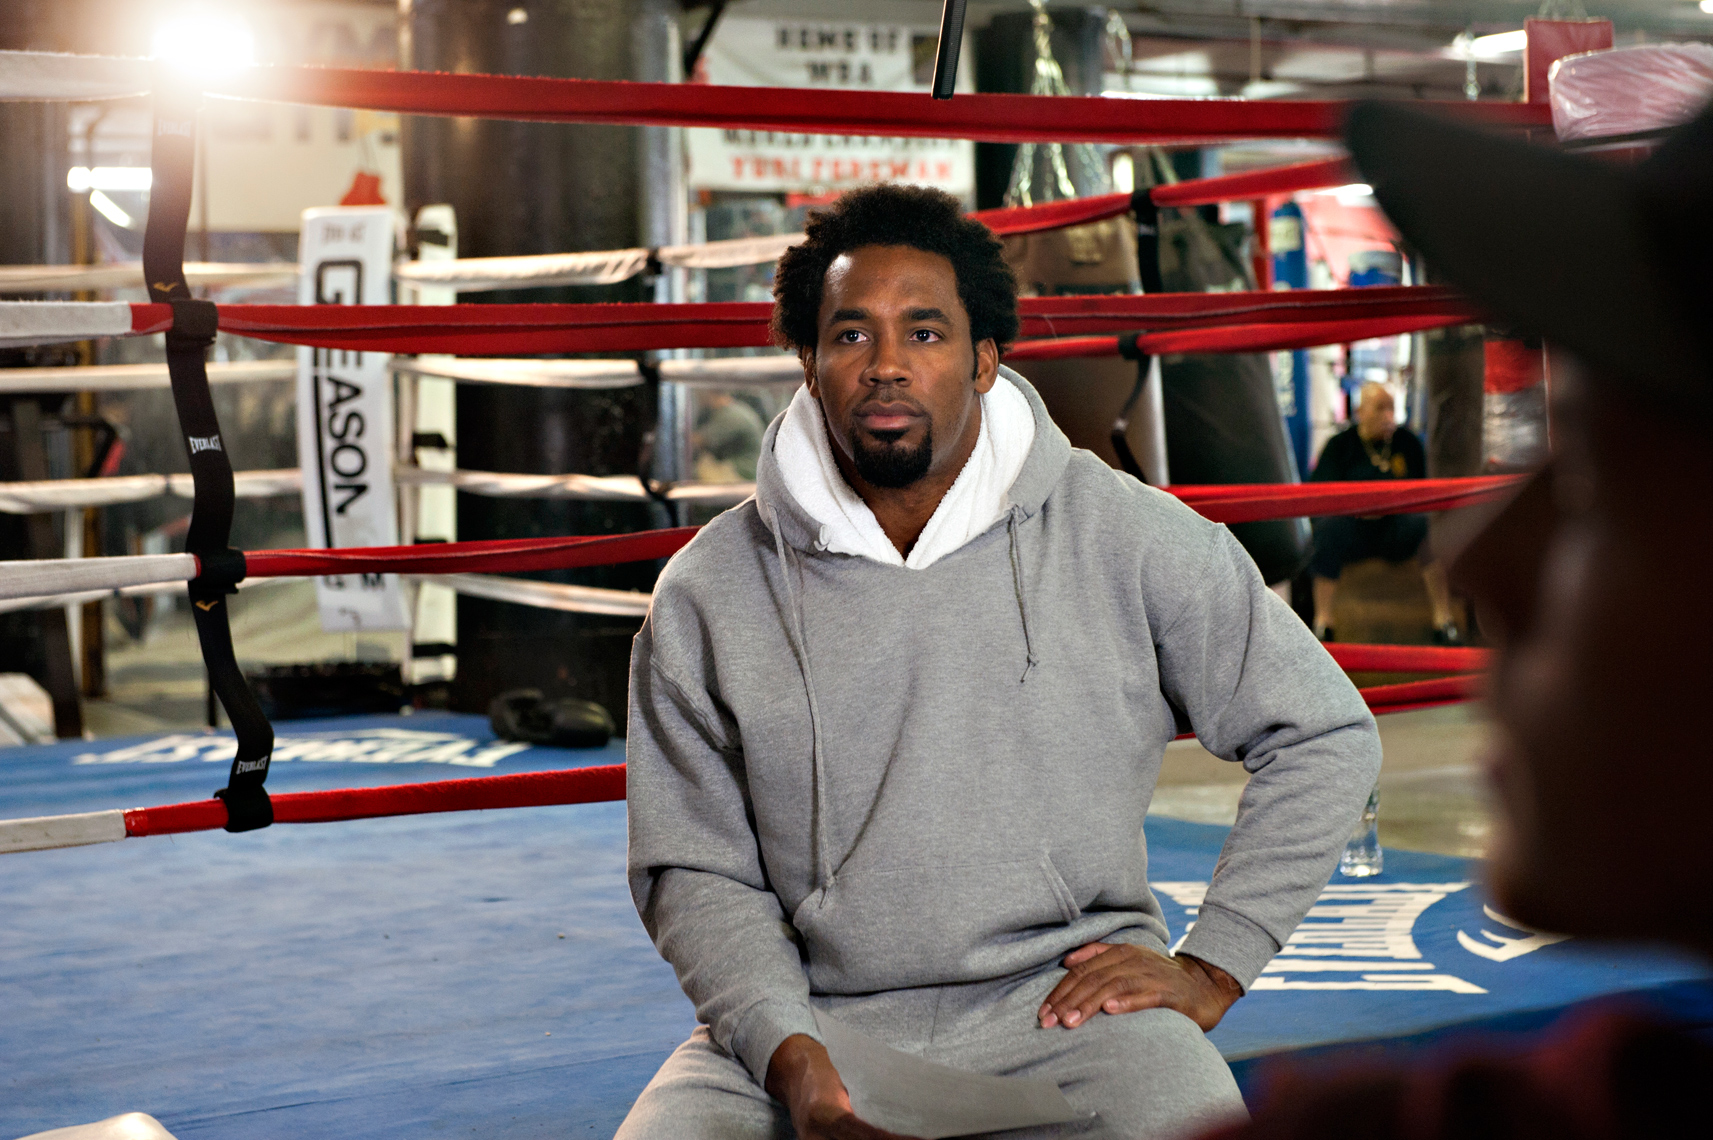 Dhani Jones, Spike TV